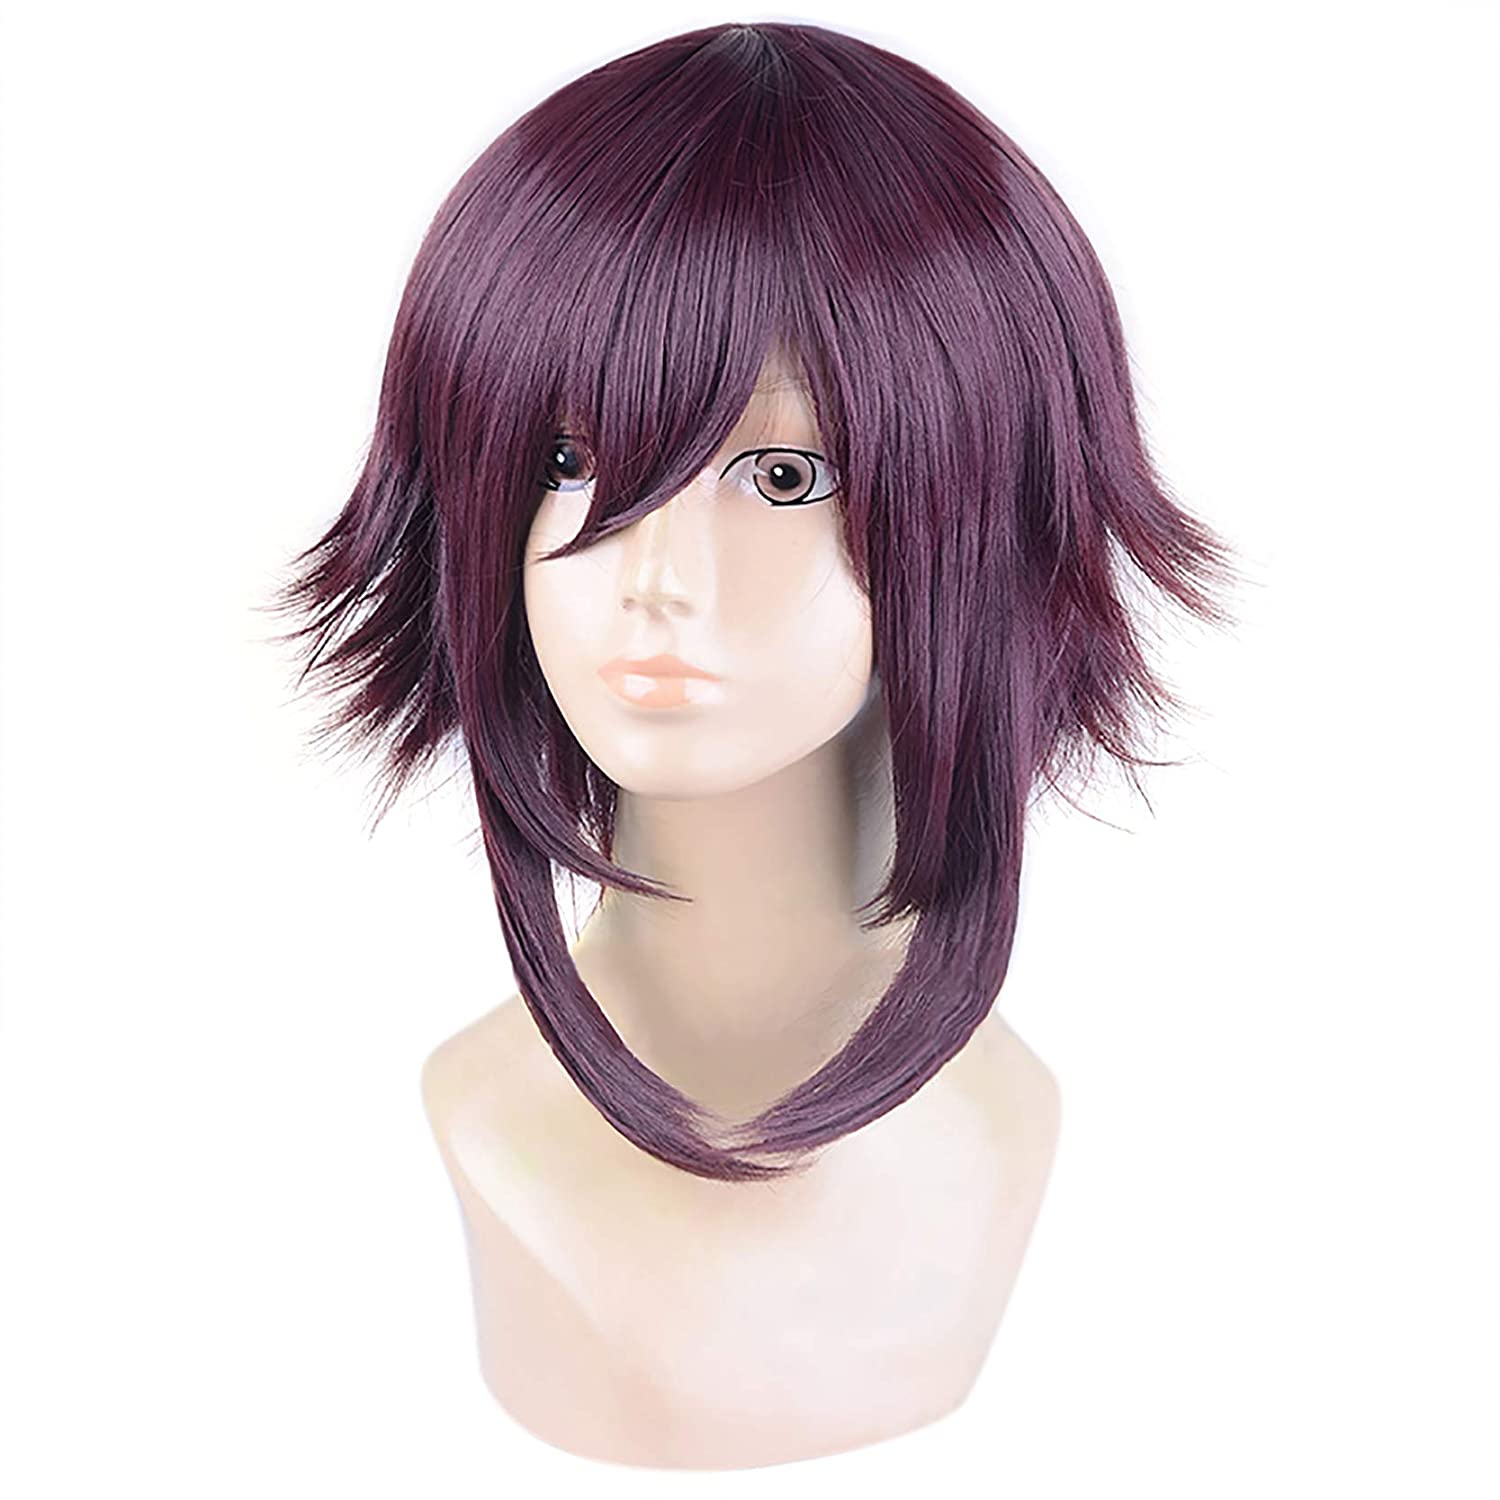 C-ZOFEK Megumin Wig KonoSuba Cosplay Costume Hair (Brown)